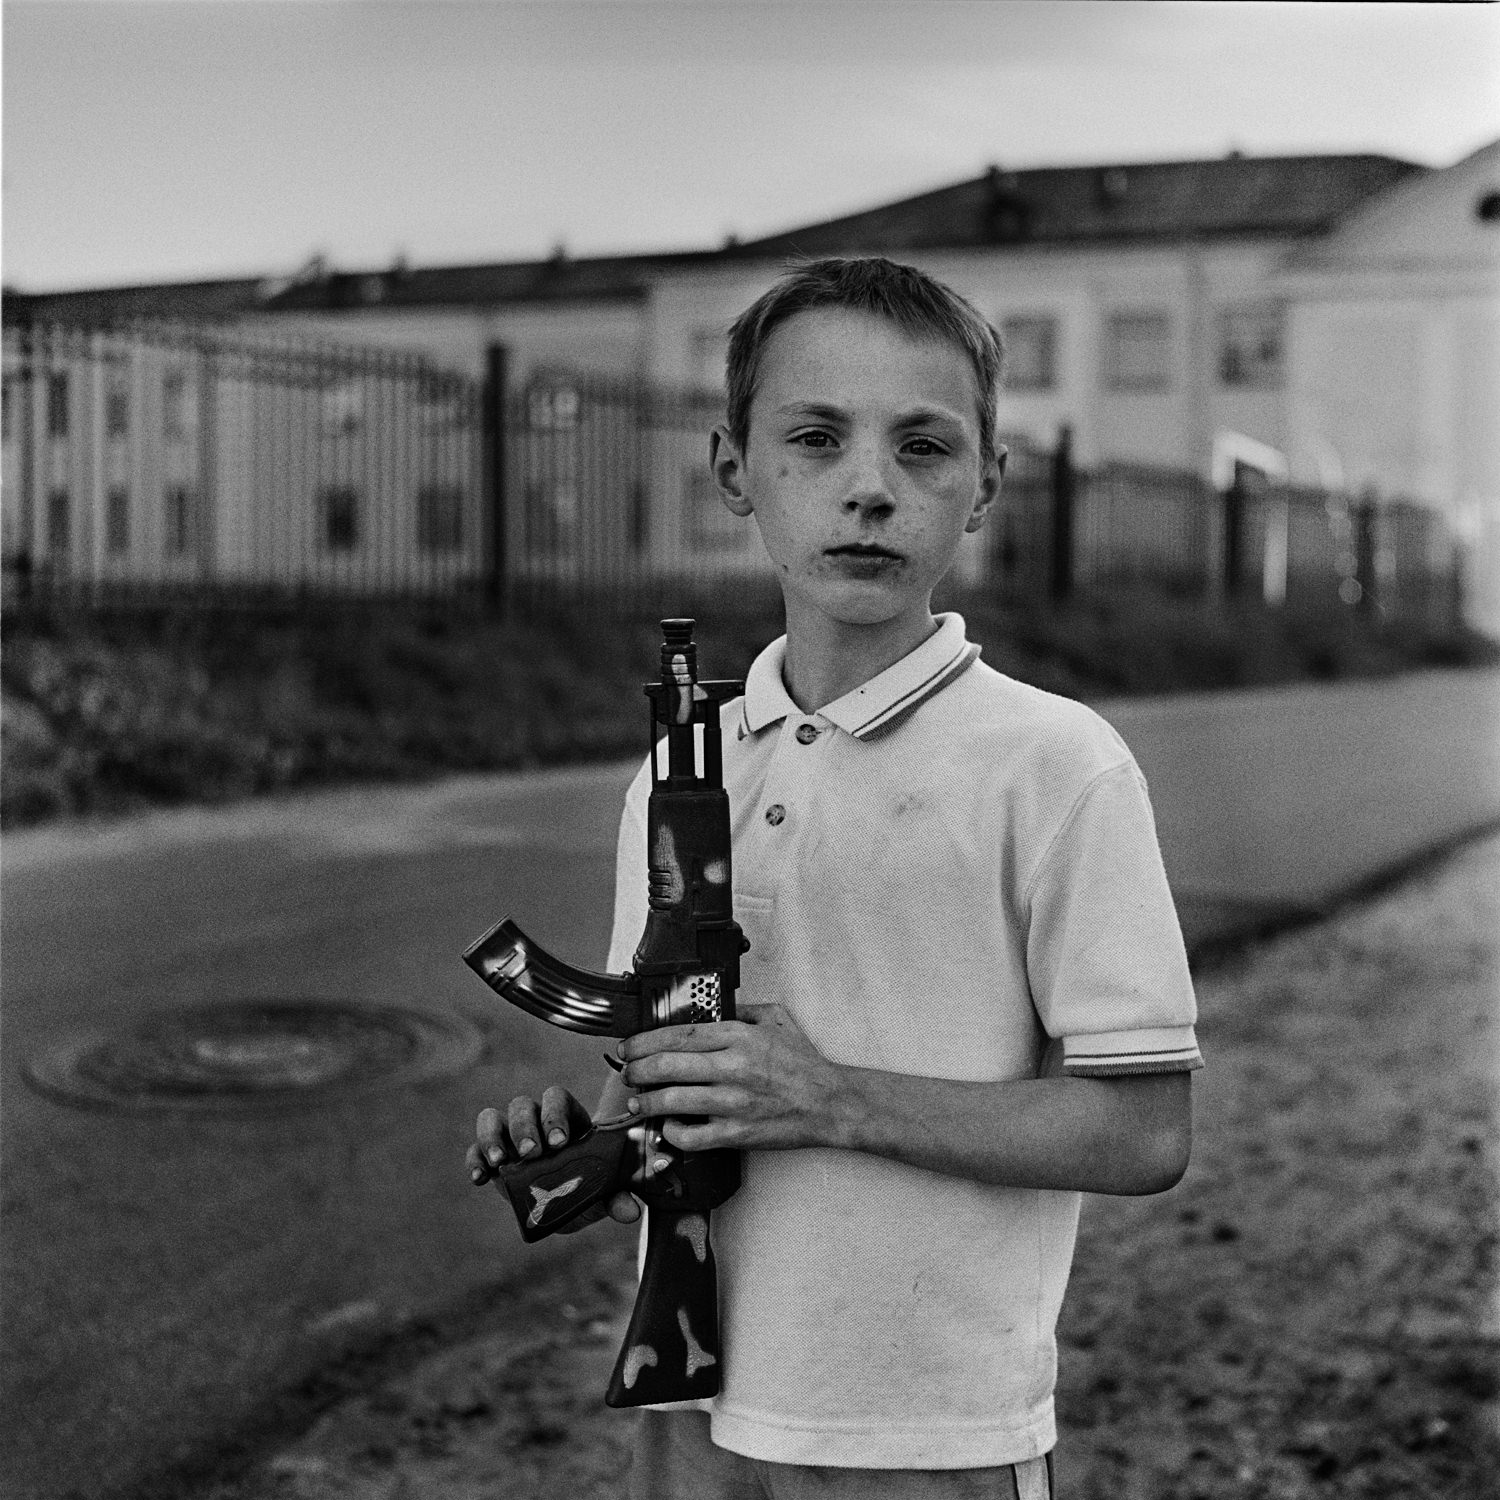 Dramatic black-white portrait of boy with dirty face handling toy machine gun in his hands with school building in background, Minsk city, Belarus